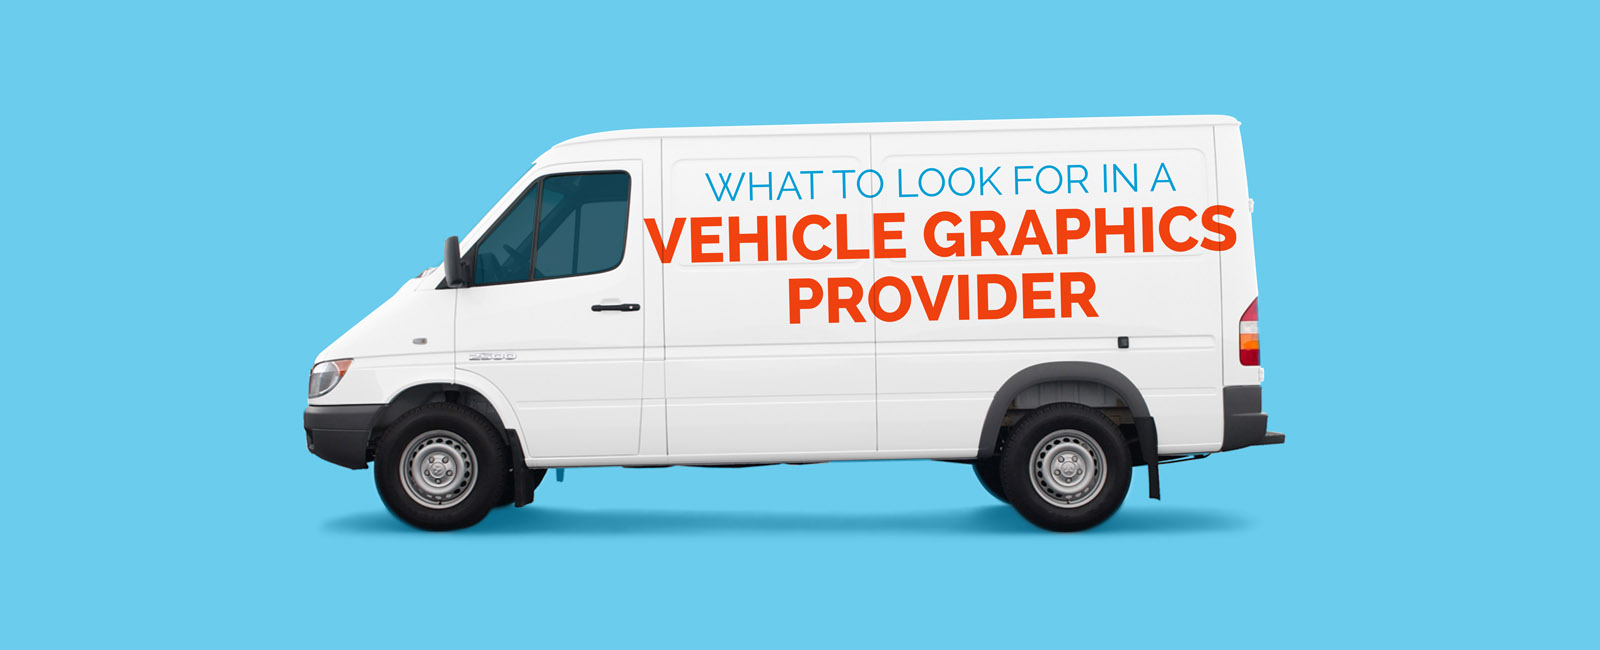 What to look for in a Vehicle Graphic Provider